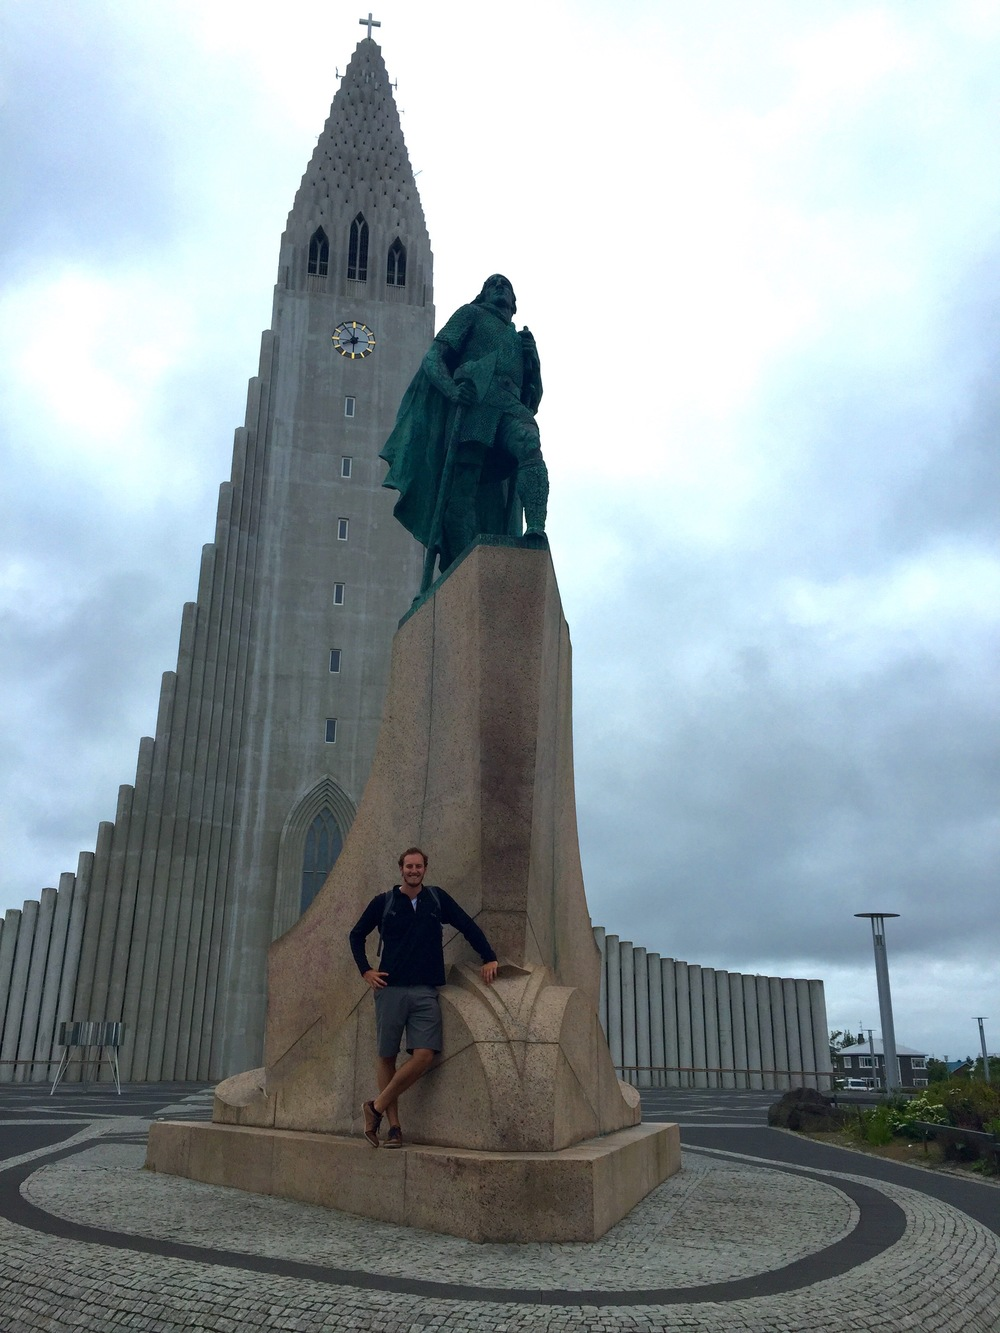 Hallgrimskirkja, the tallest point in Reykjavik, and me in front of the Leif Erikkson statue, an early Viking explorer of the Americas and Icelandic resident.